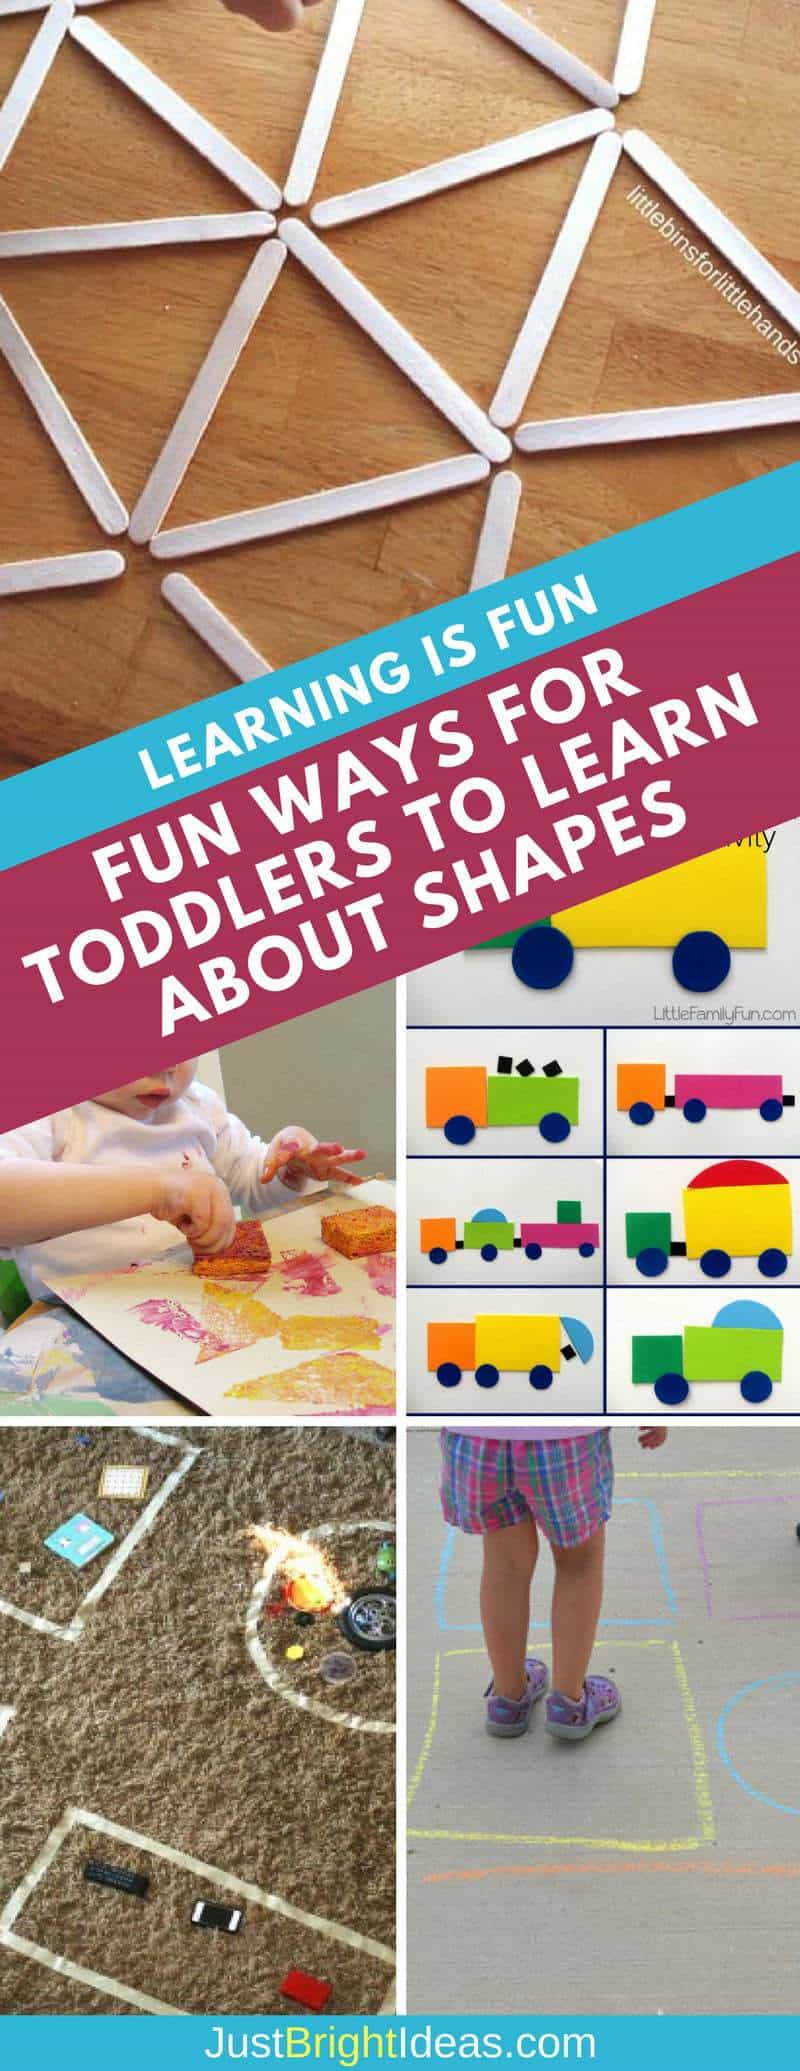 Learn about shapes for toddlers